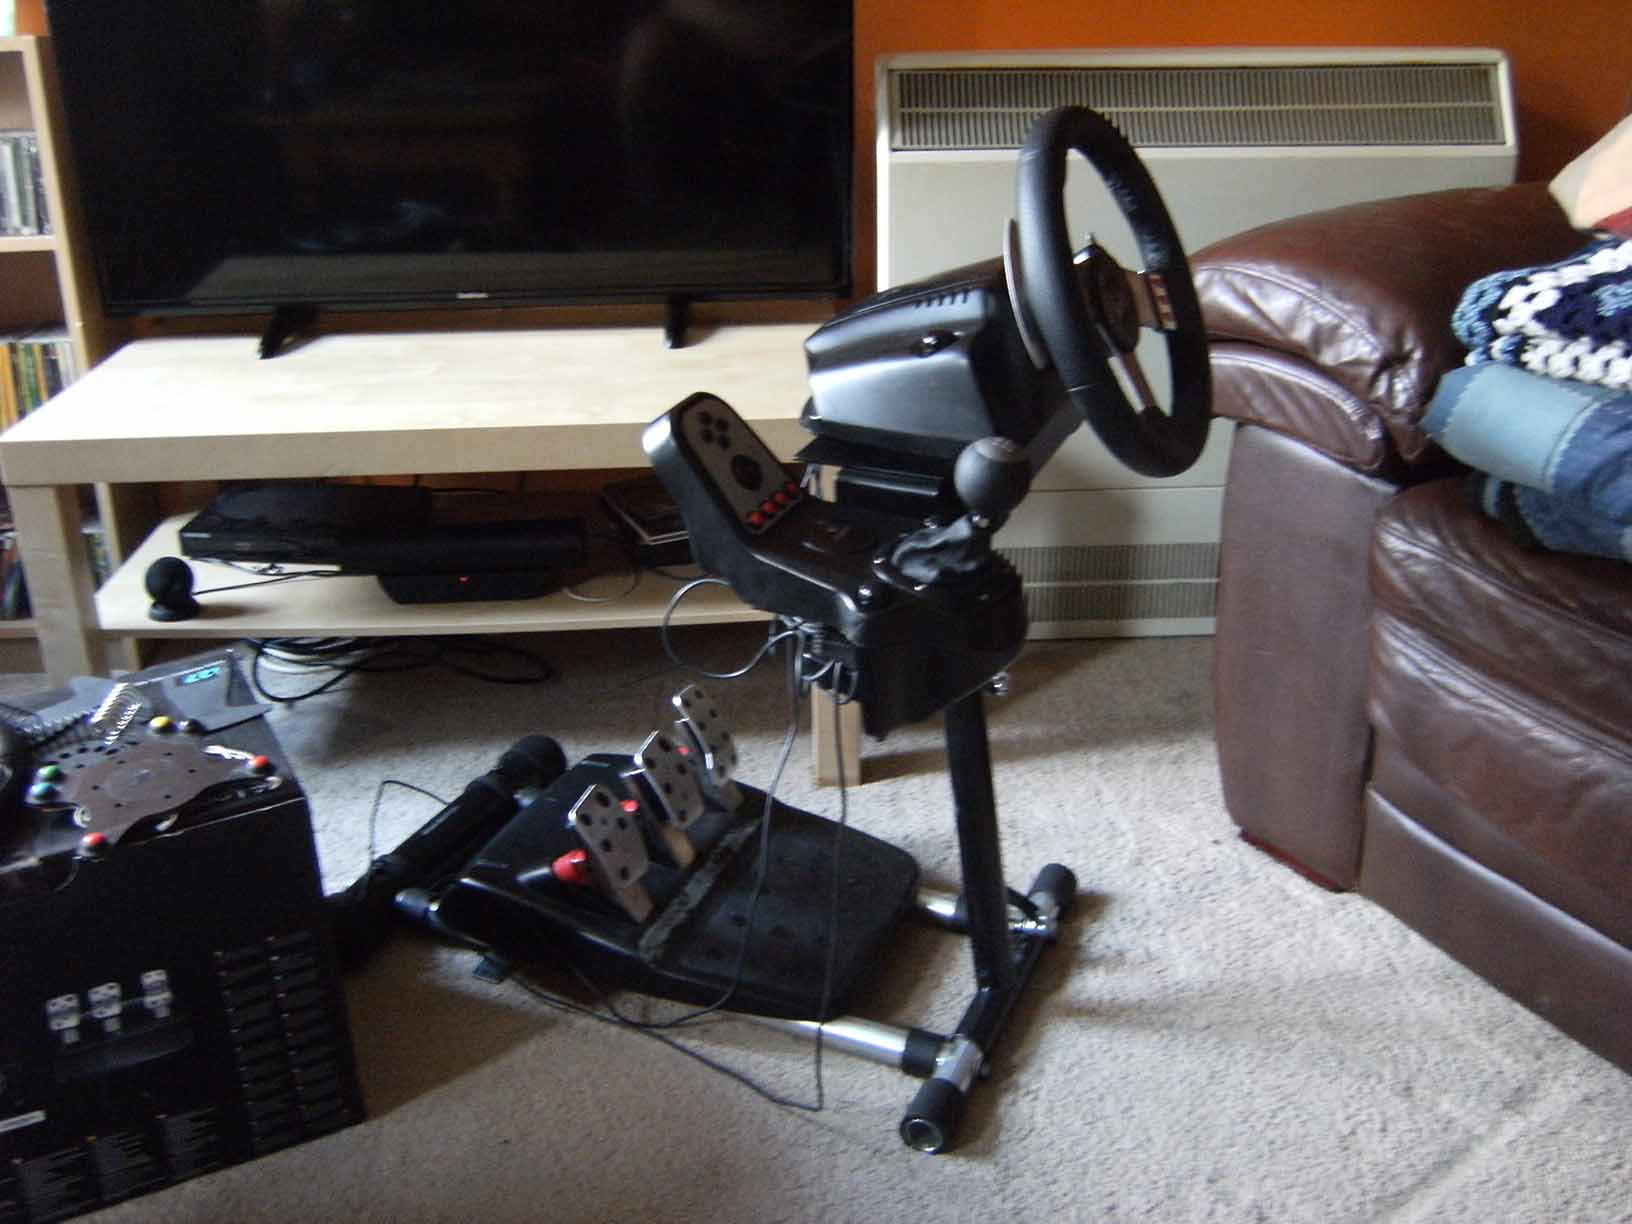 Sell - UK-Logitech G27, stand and mods  | RaceDepartment - Latest